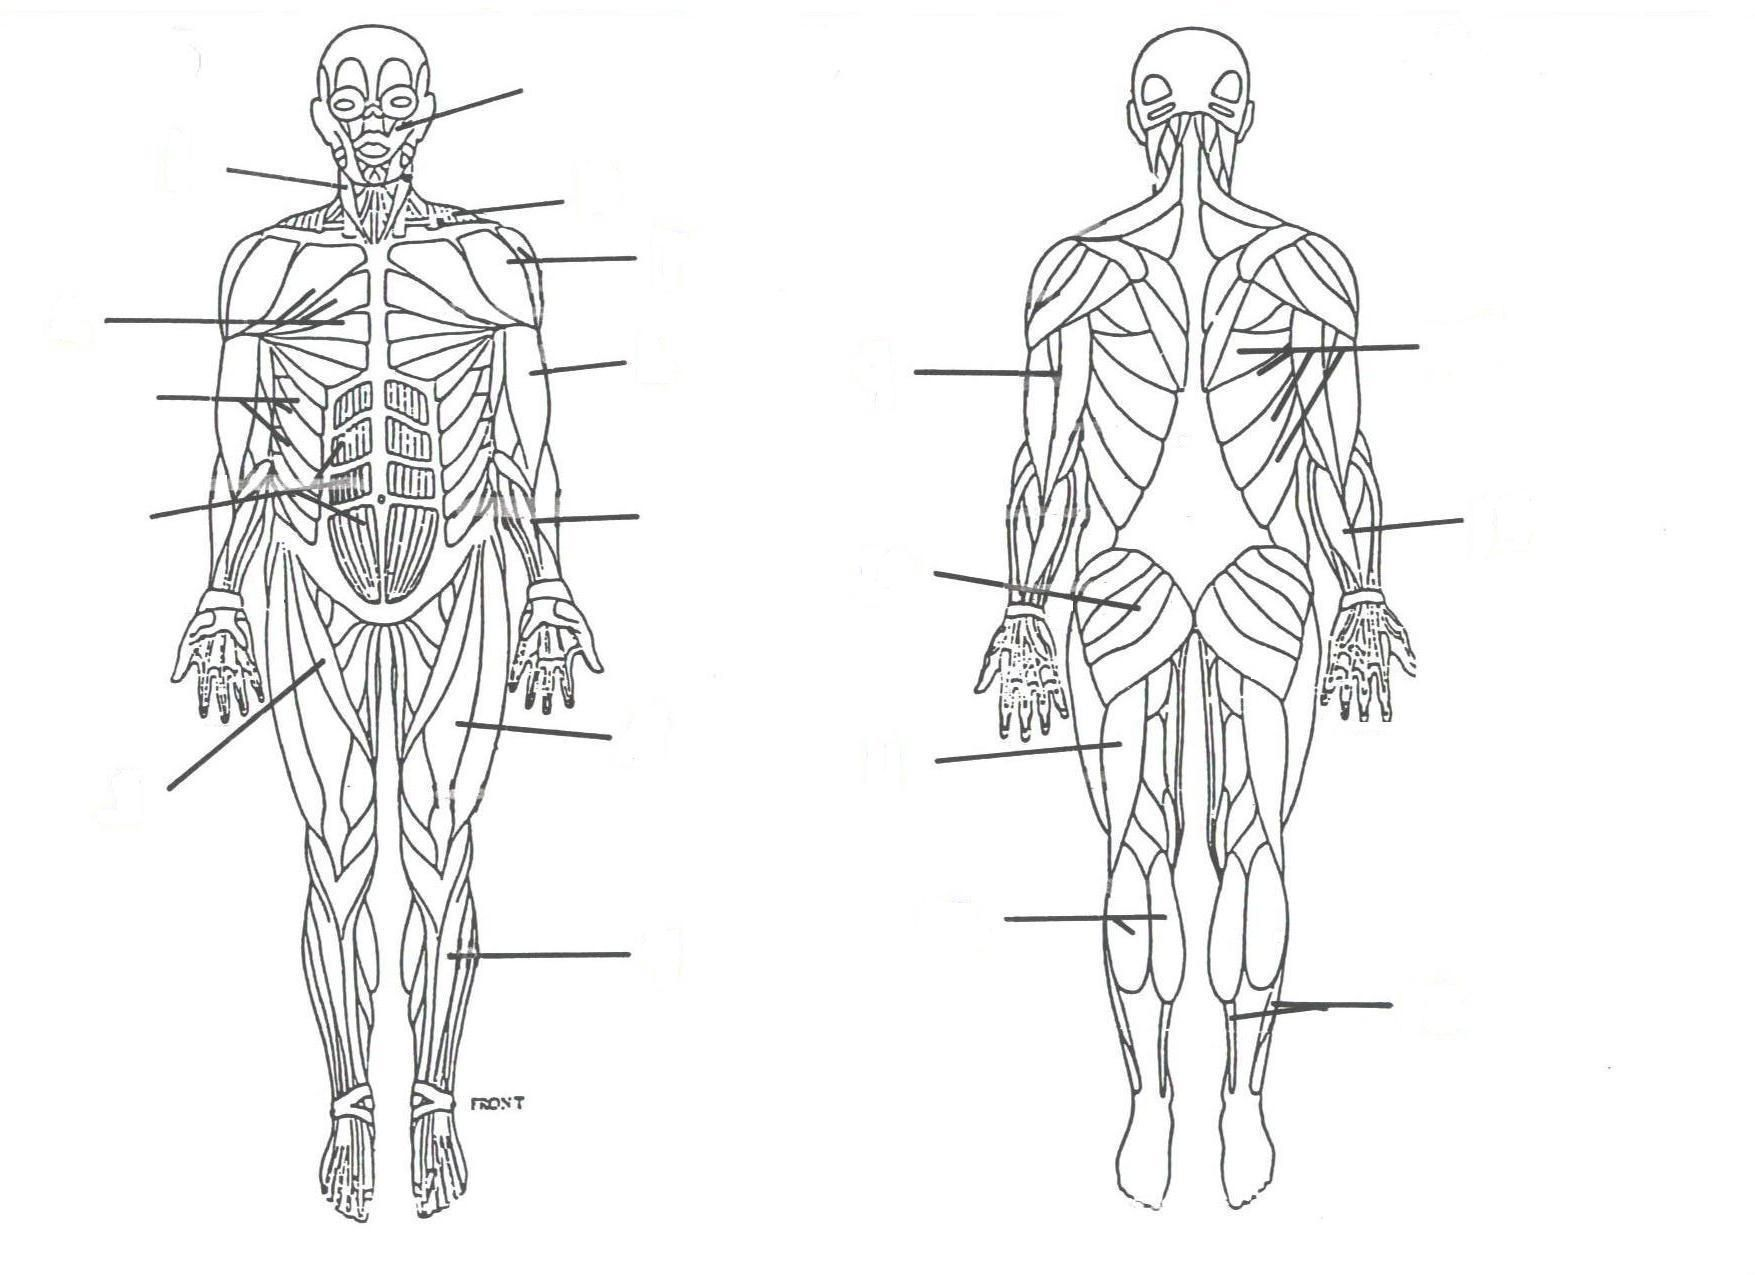 muscular system without labels   muscular system without labels muscular system without labels